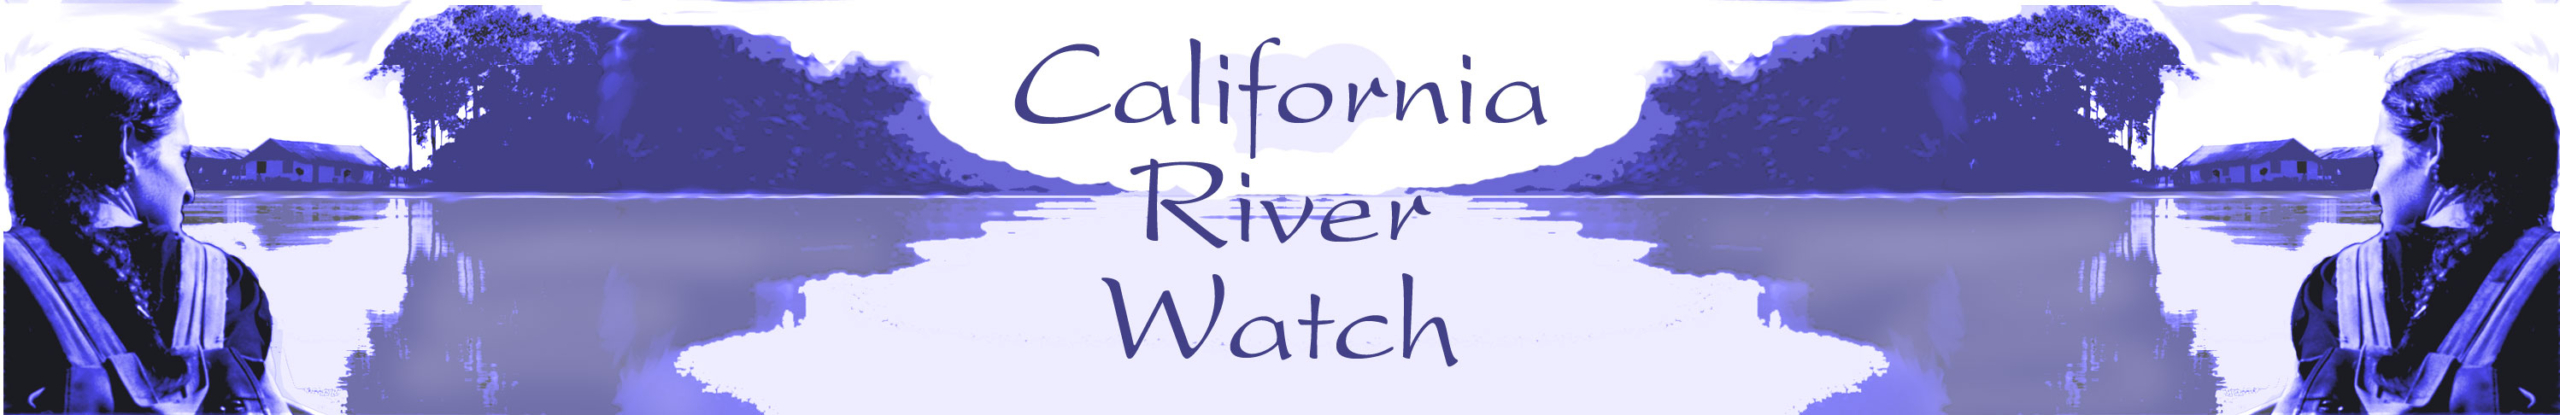 River Watch Header Image